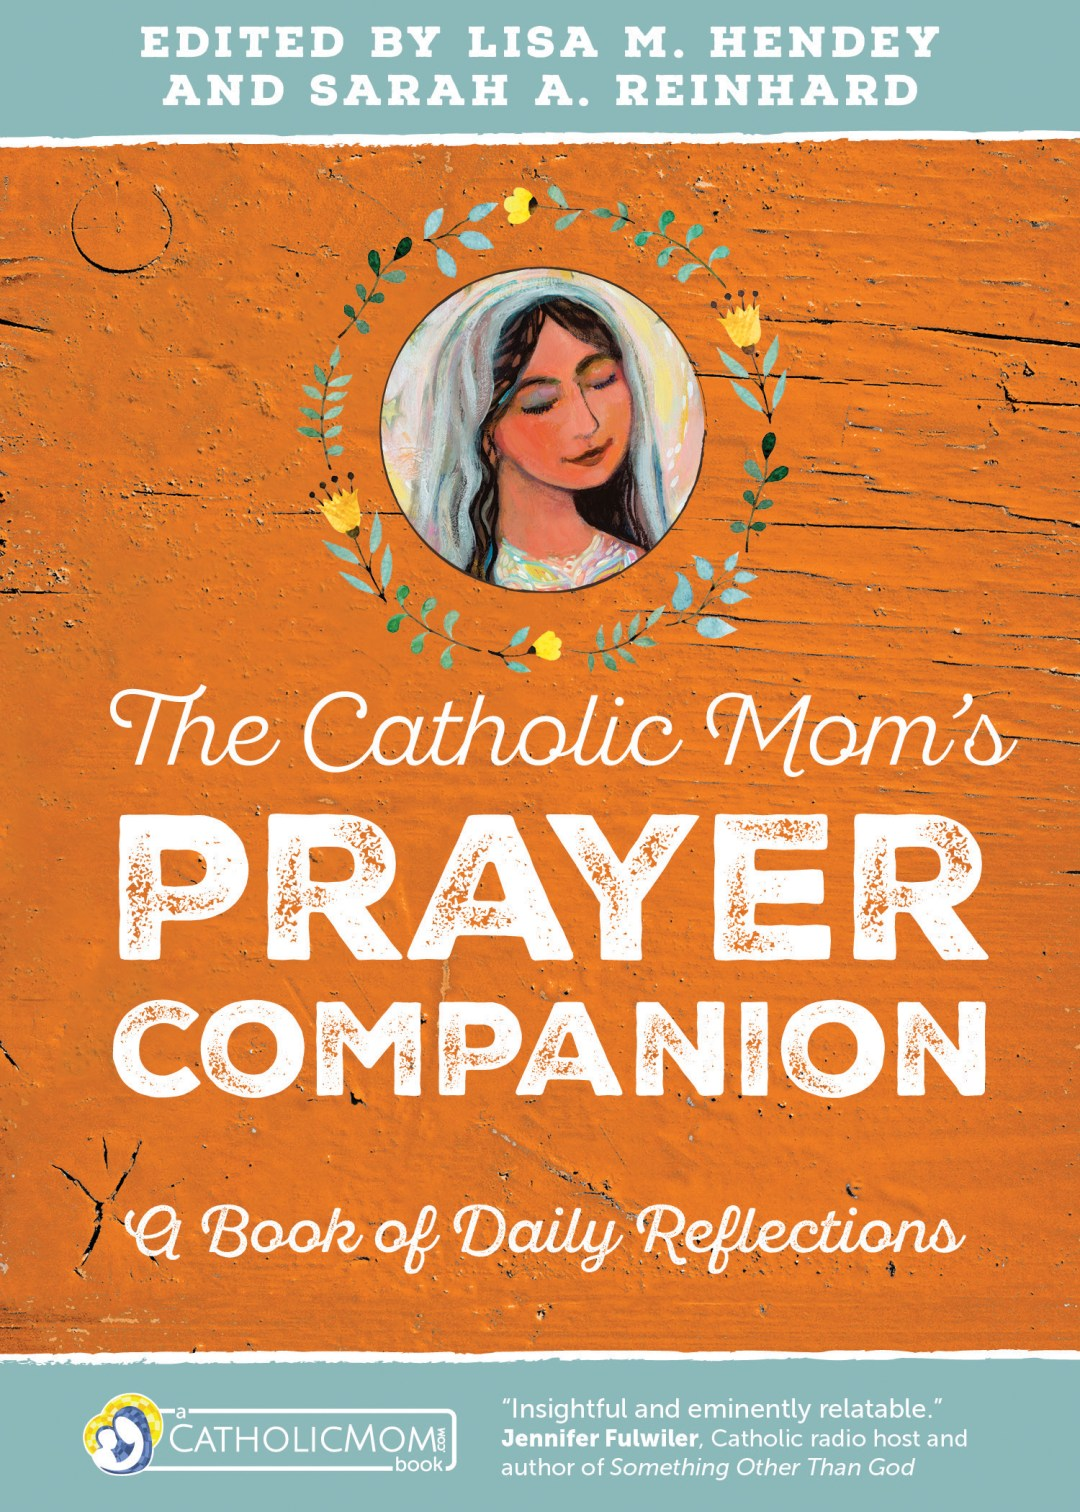 A Catholic Mom's Prayer Companion